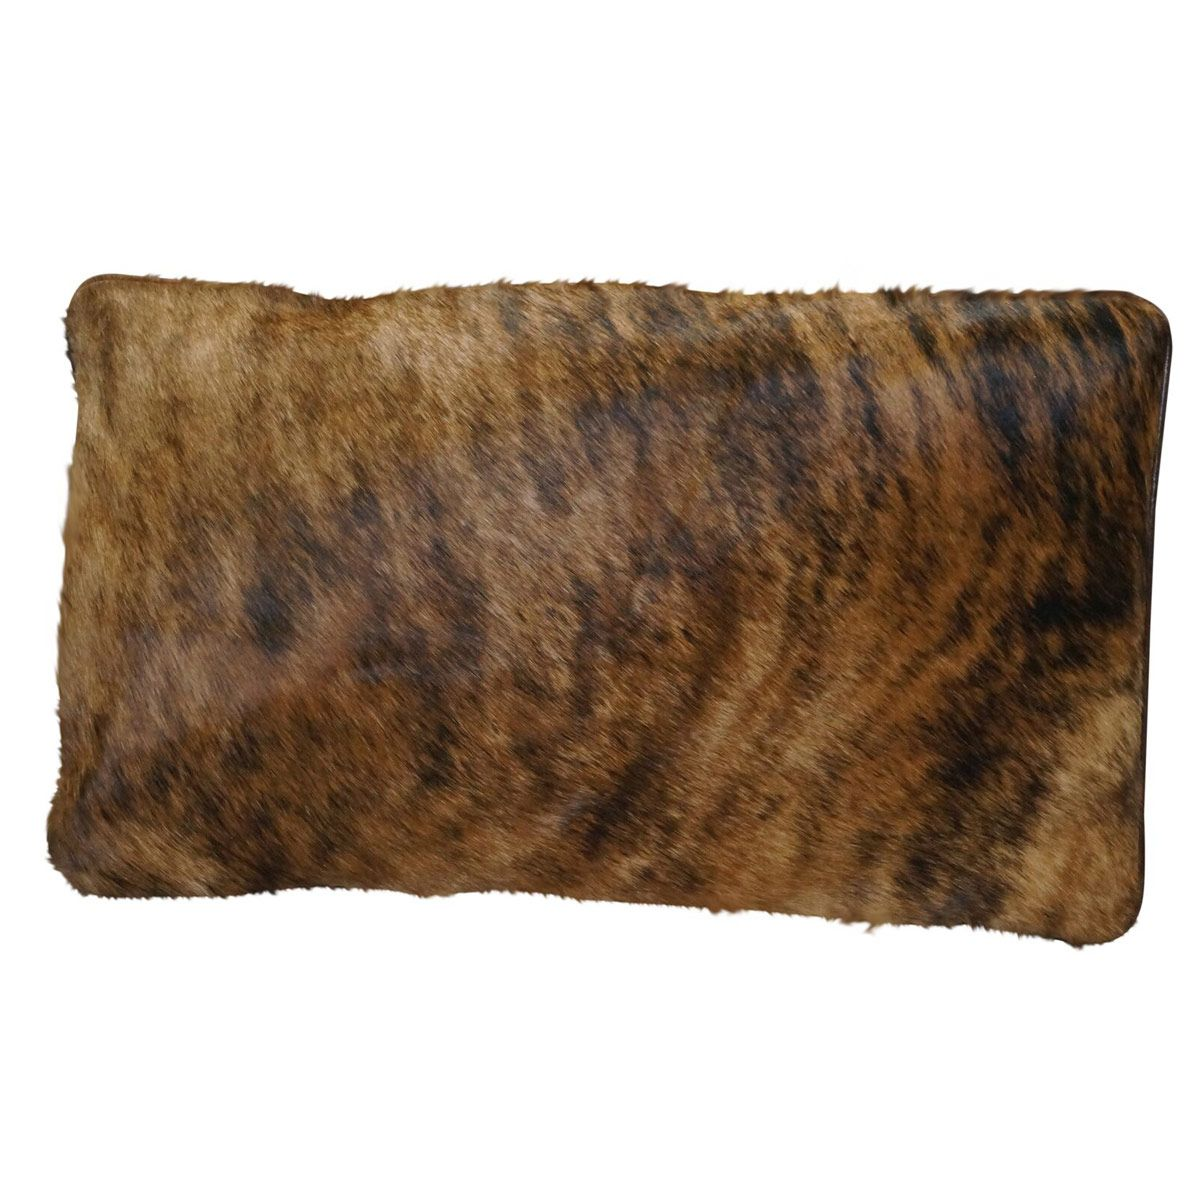 Cowhide Lumbar Pillow - Dark Brindle